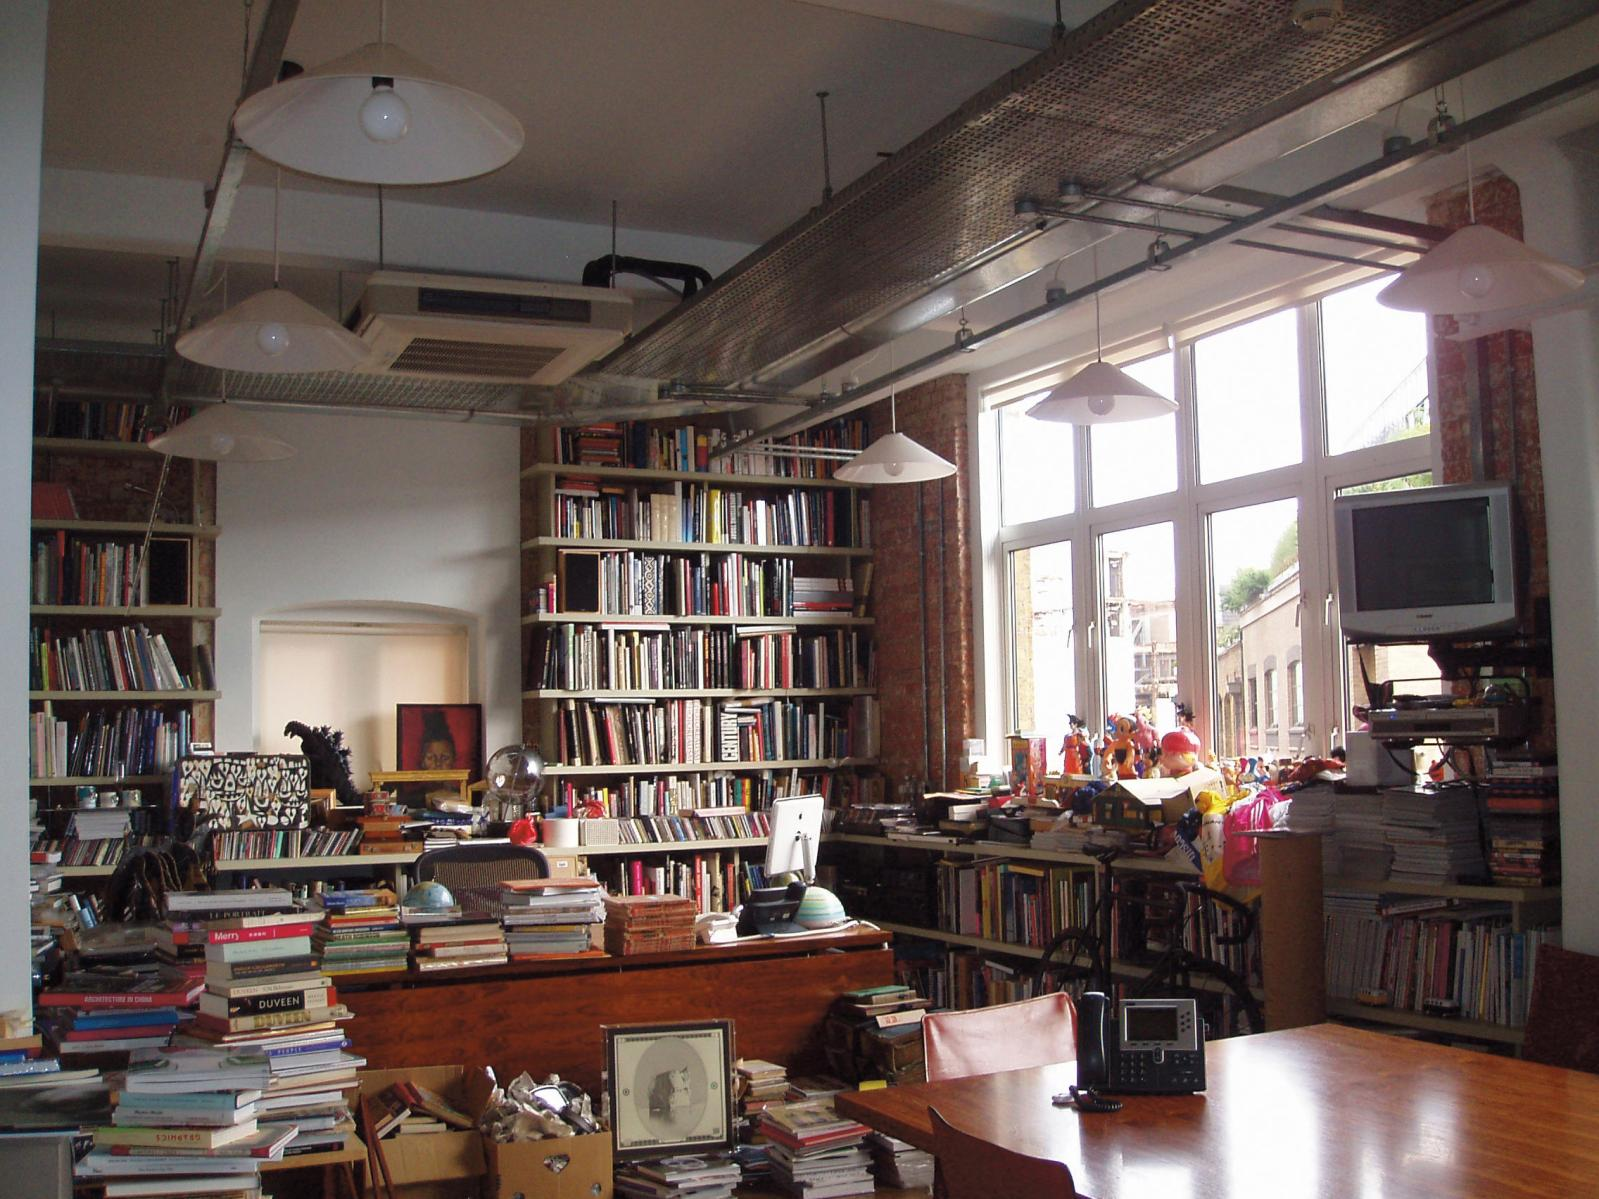 Paul Smith's office, cluttered with books and objects.© Paul Smith